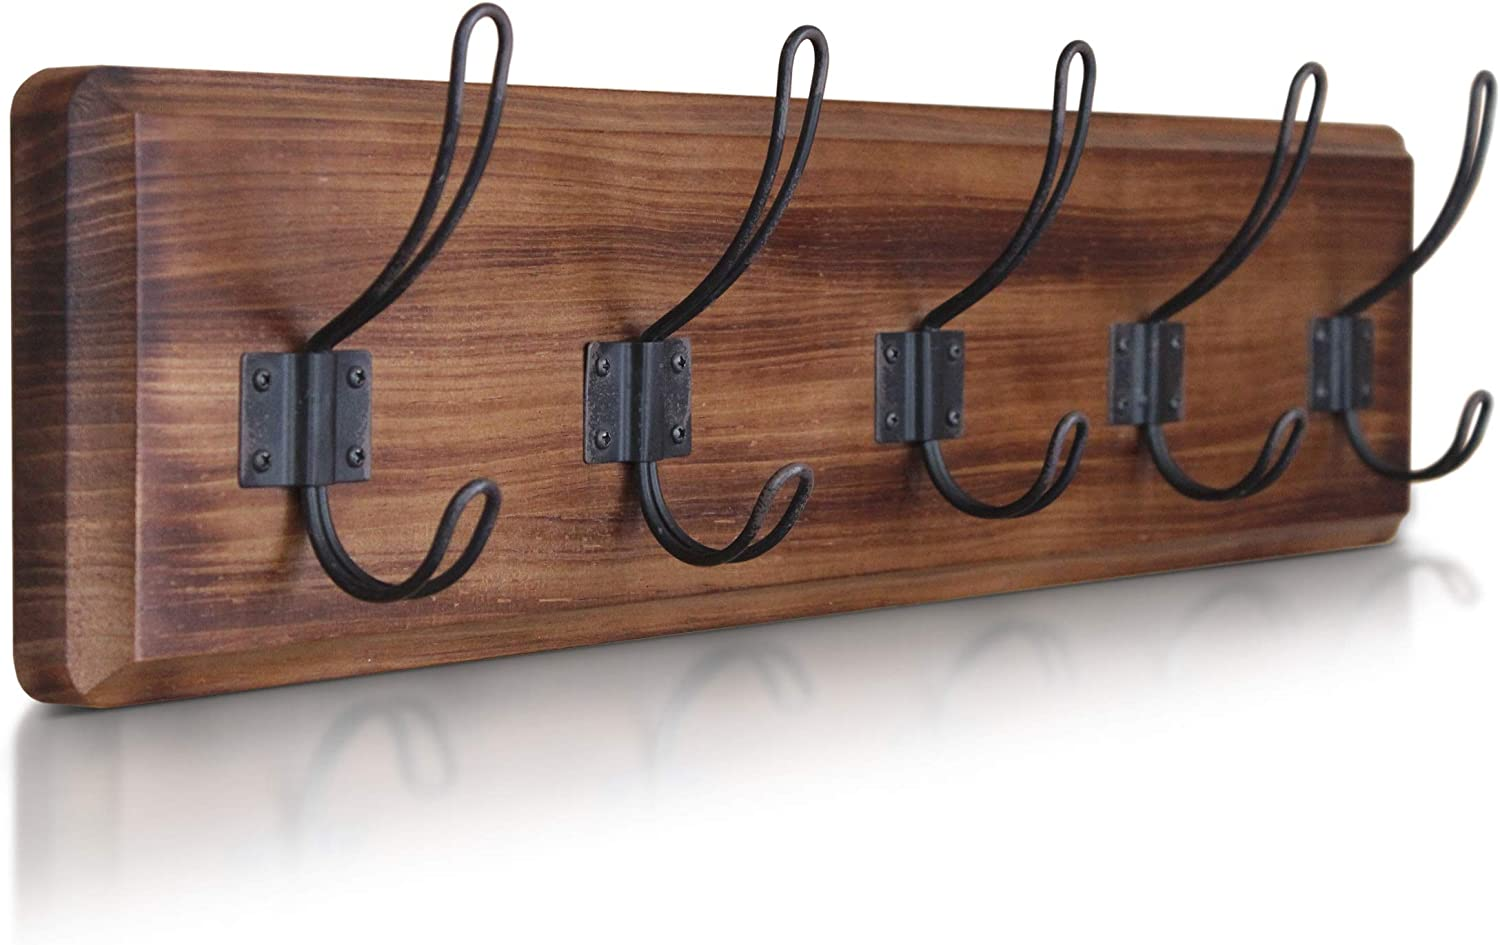 "Rustic Coat Rack - Wall Mounted Wooden 24"" Entryway Coat Hooks - 5 Rustic Hooks, Solid Pine Wood. Perfect Touch for Your Entryway, Kitchen, Bathroom. (Rustic Brown)"